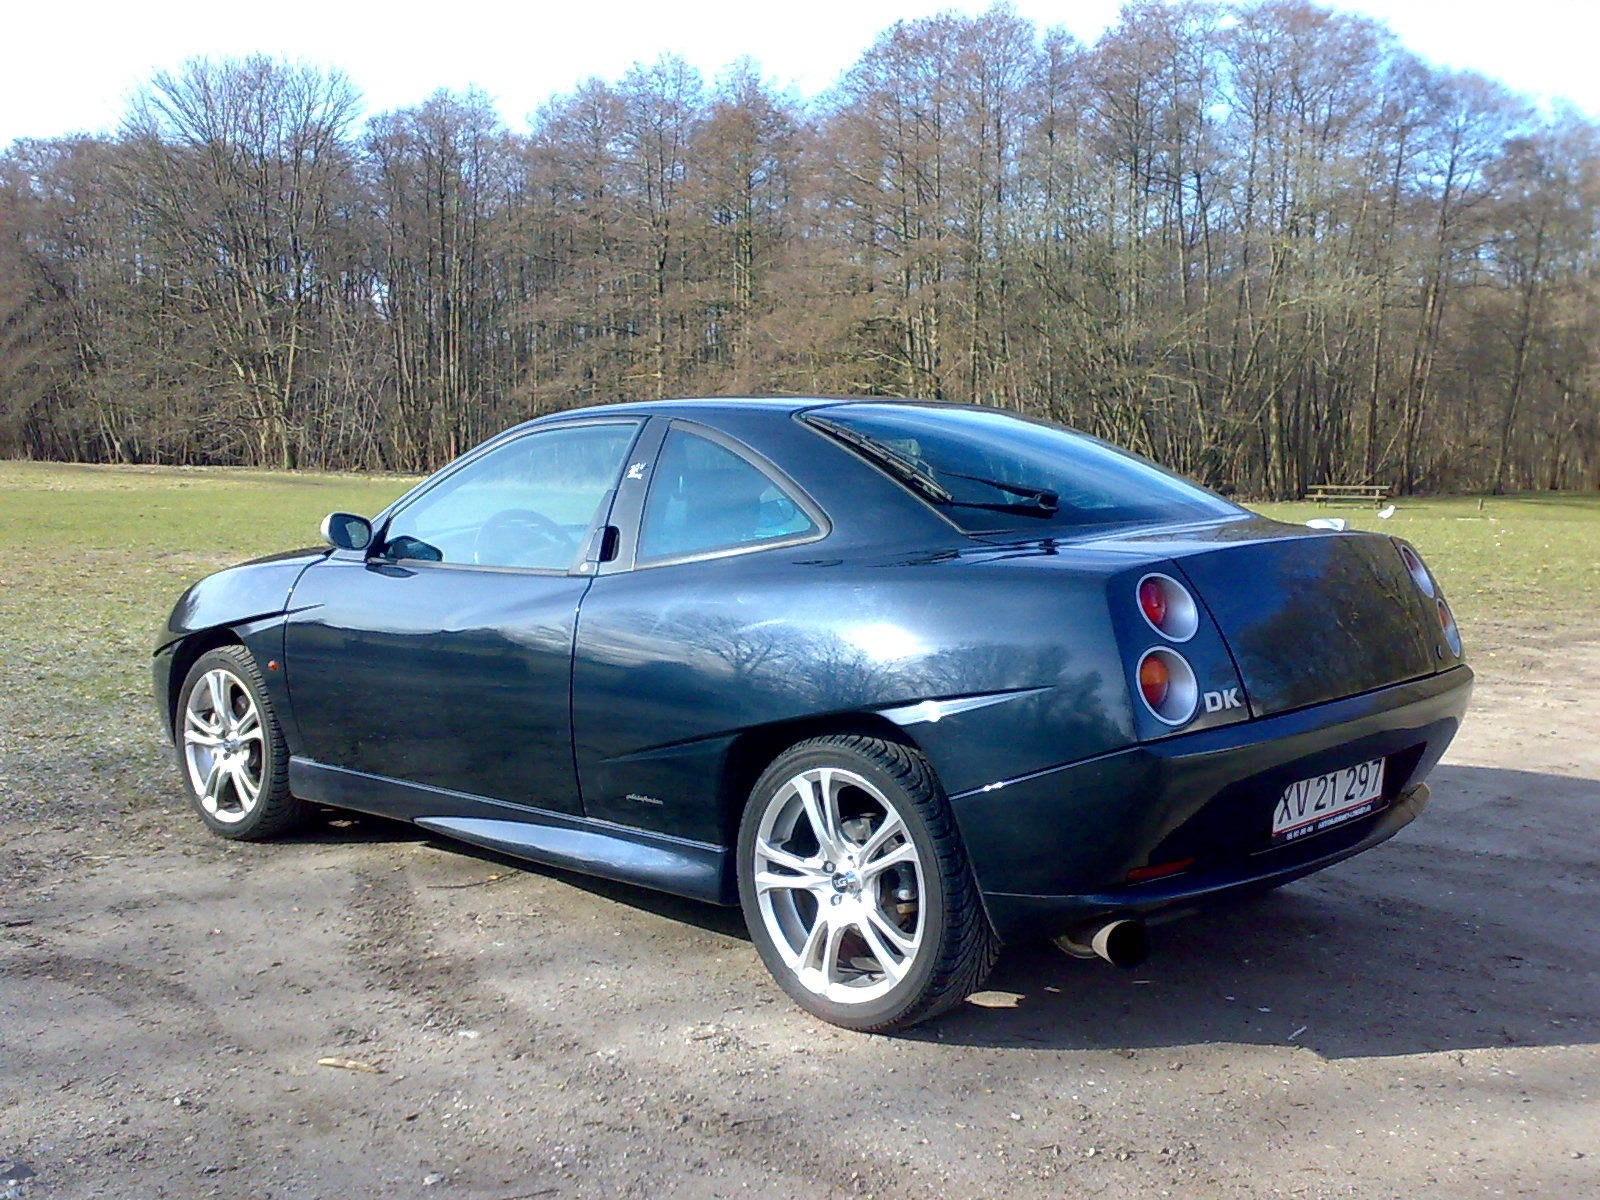 1998 Fiat Coupe #18